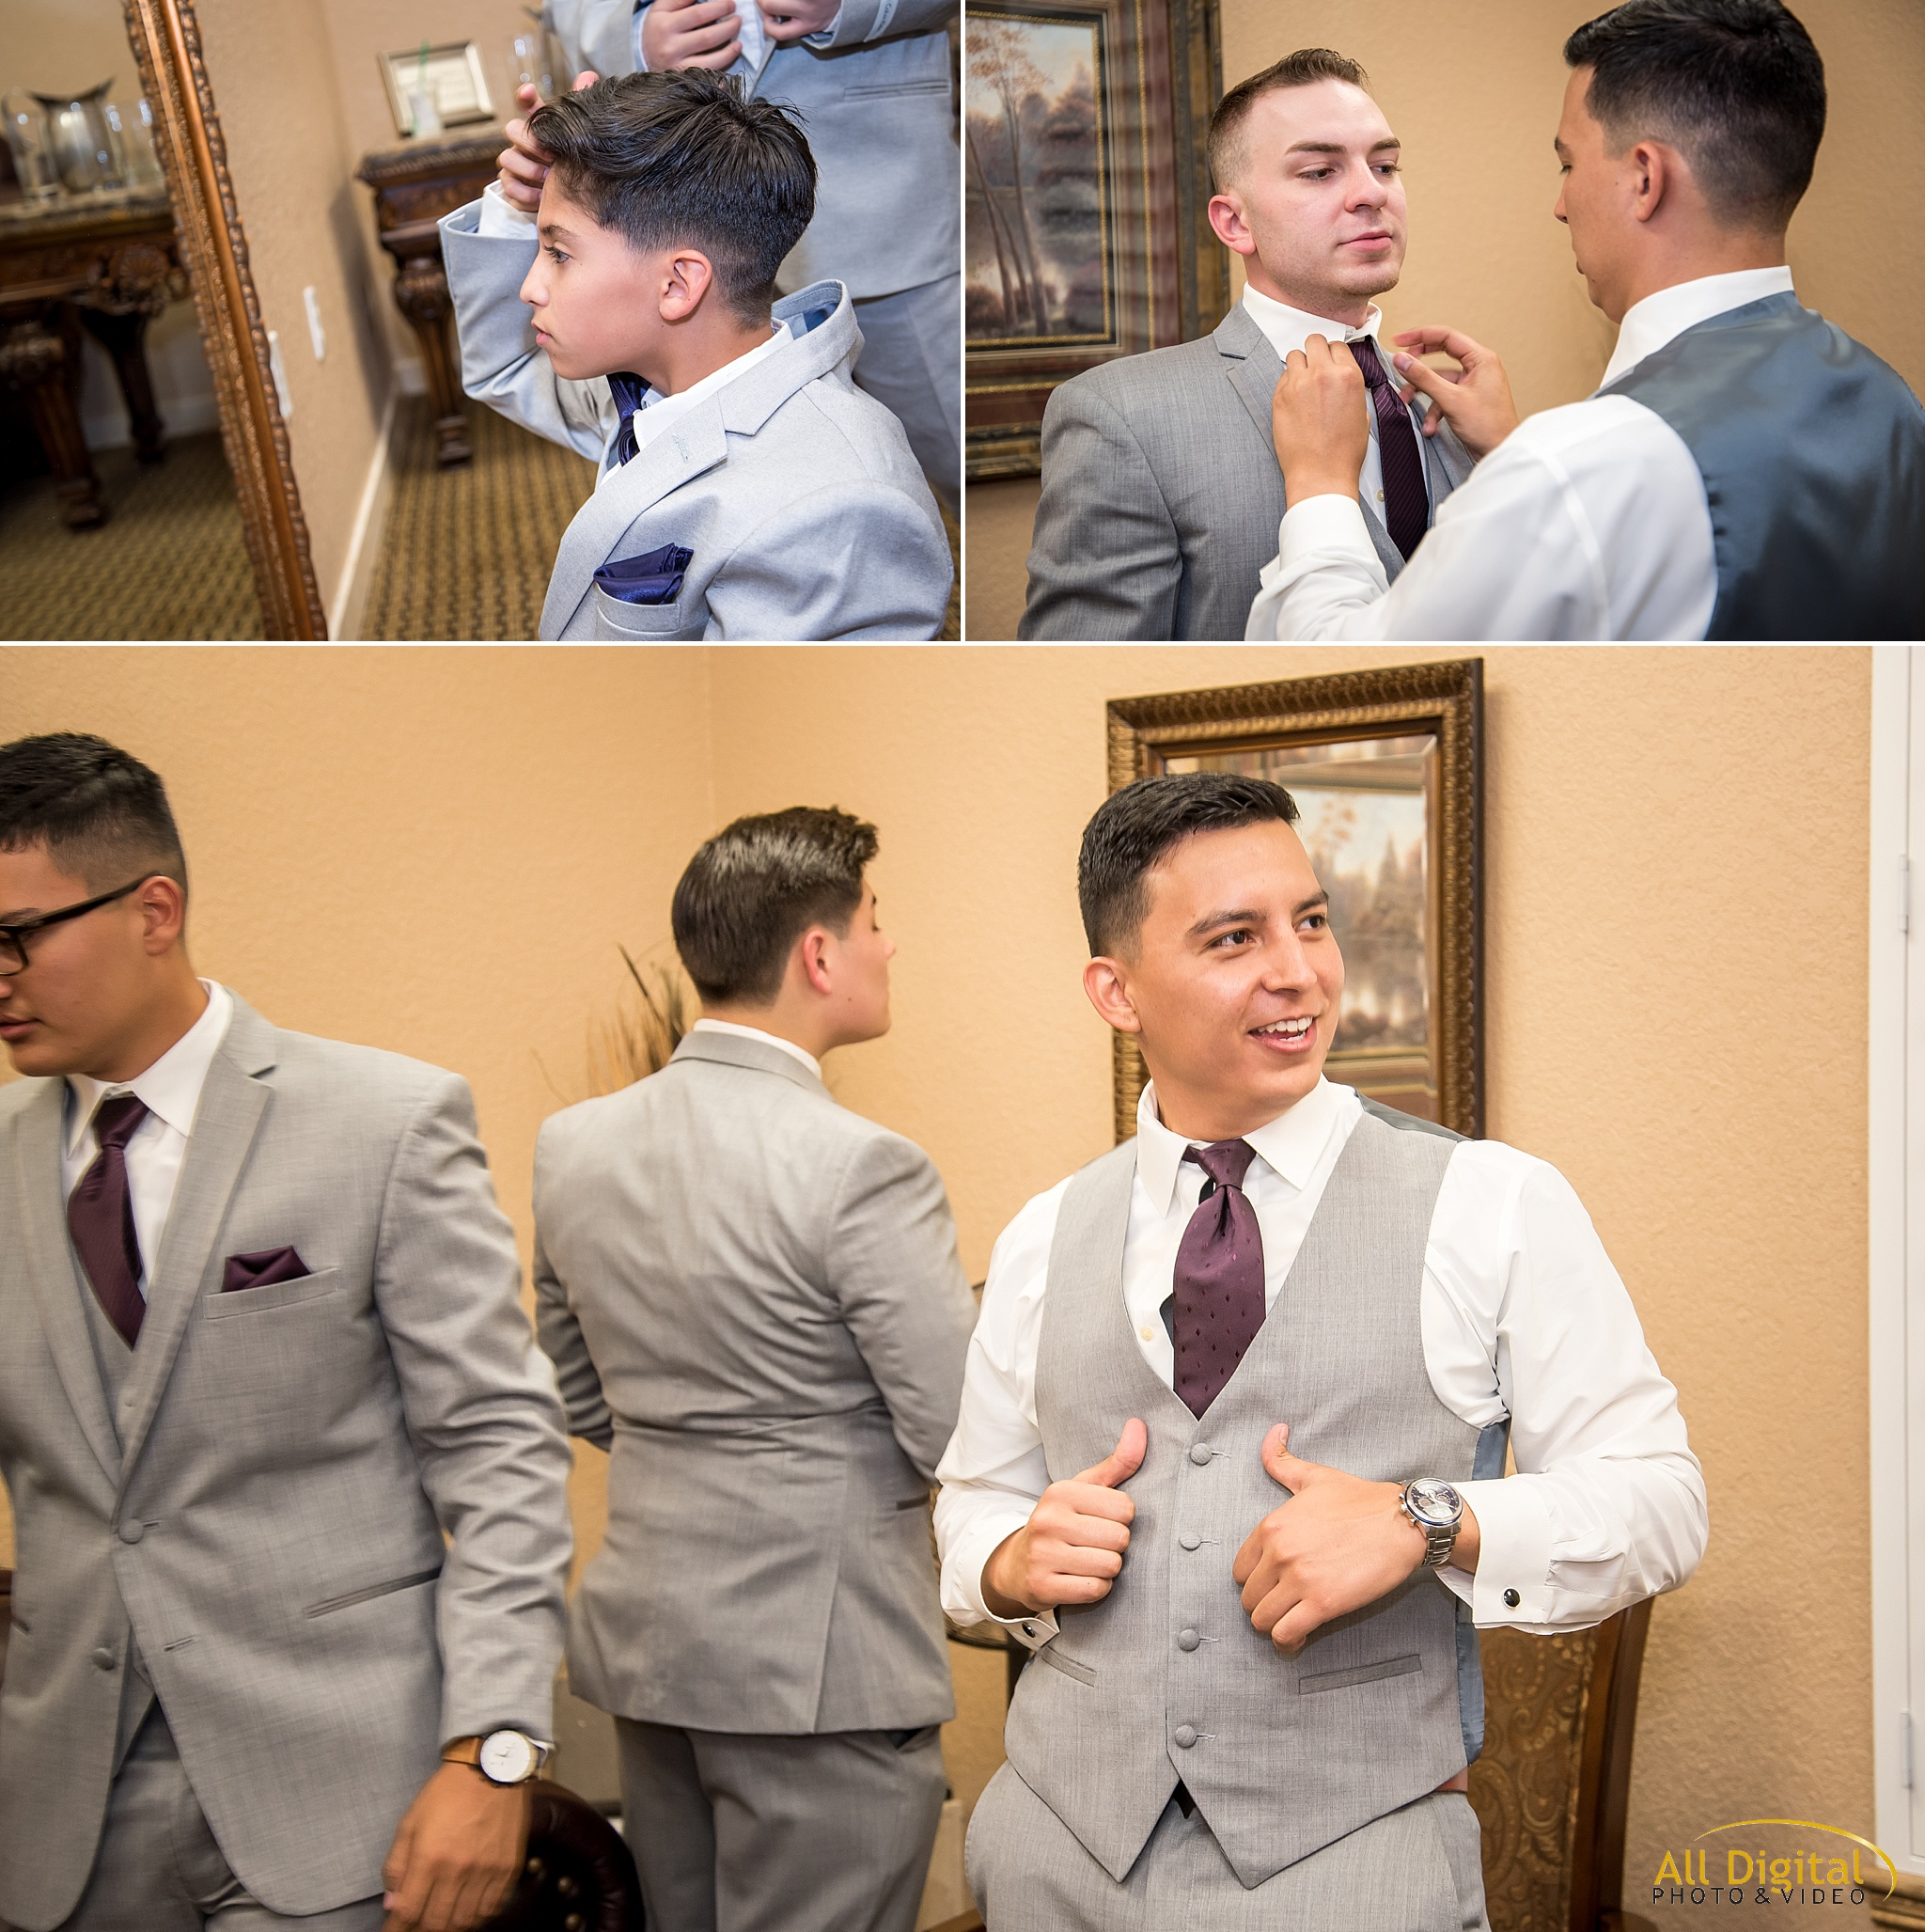 Anthony and his groomsmen getting ready at Stonebrook Manor.